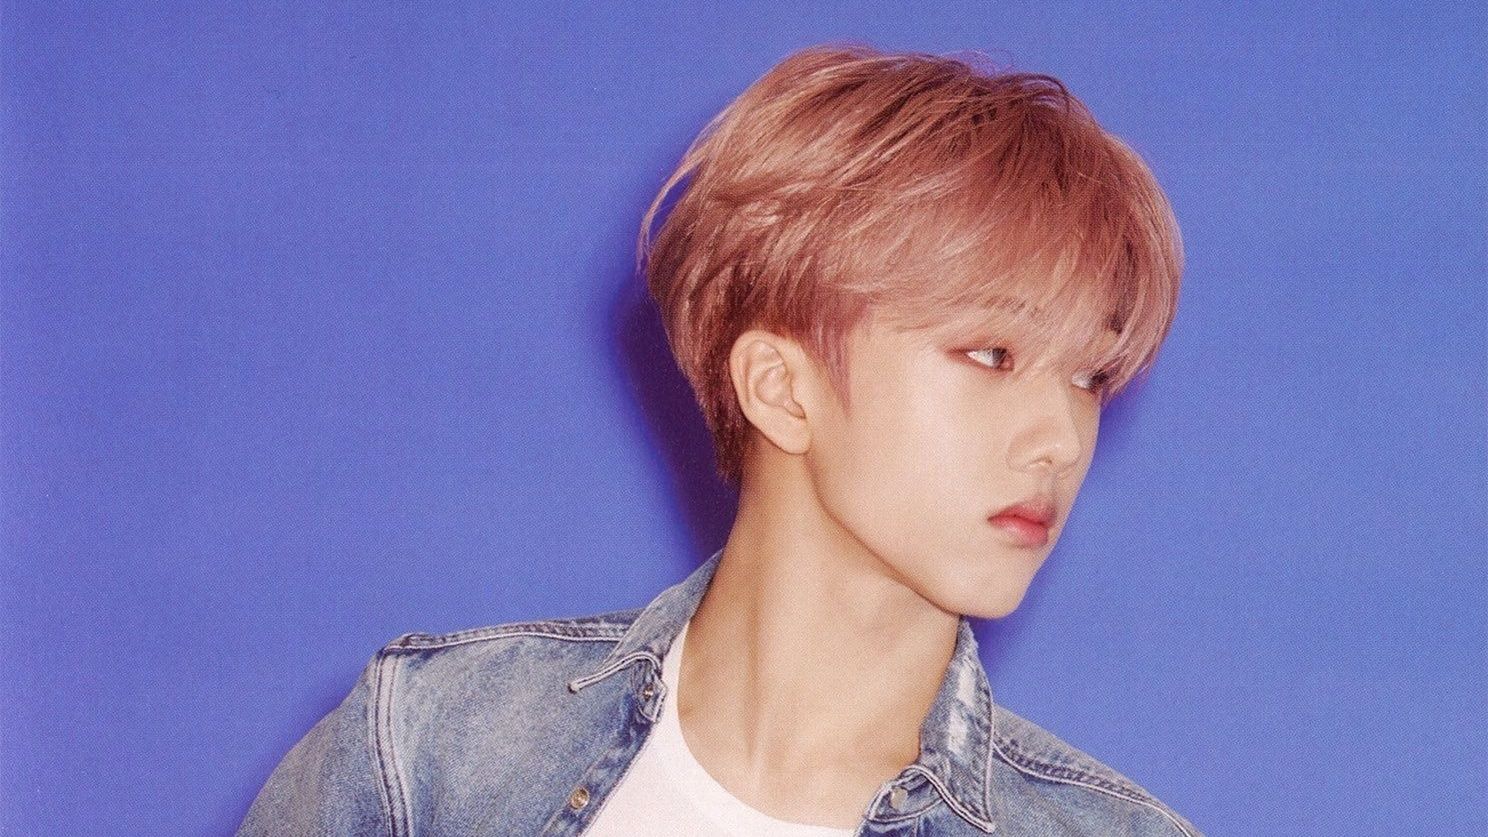 SM Entertainment Give a Statement Regarding The Knee Injury Suffered by NCT's Jisung